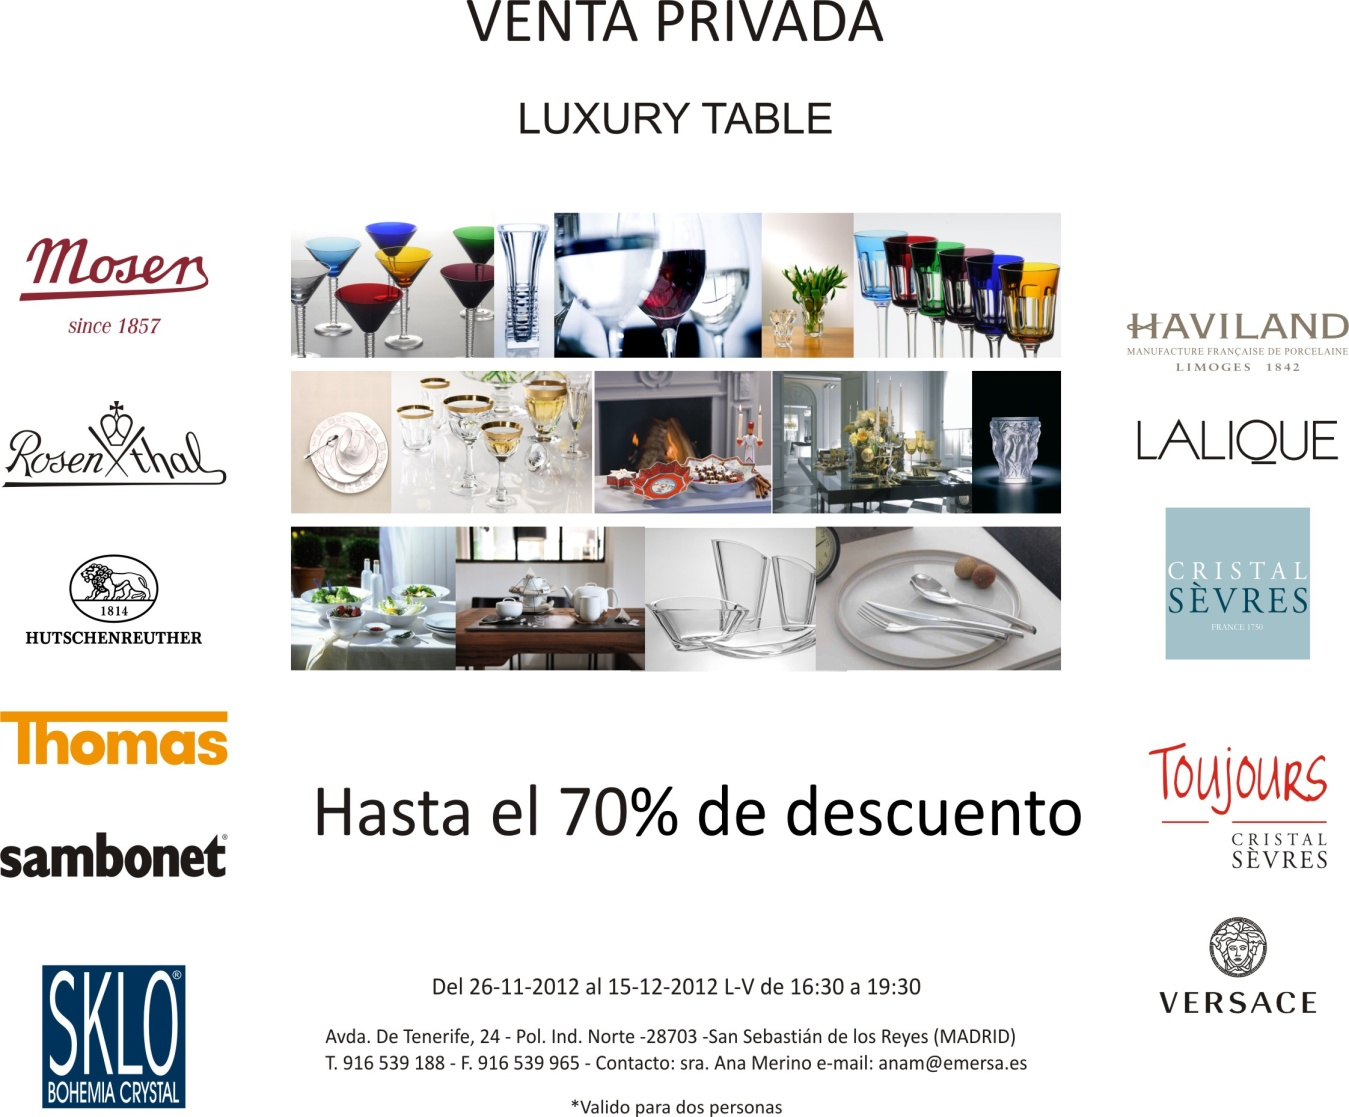 Venta Privada y Exclusiva Luxury Table